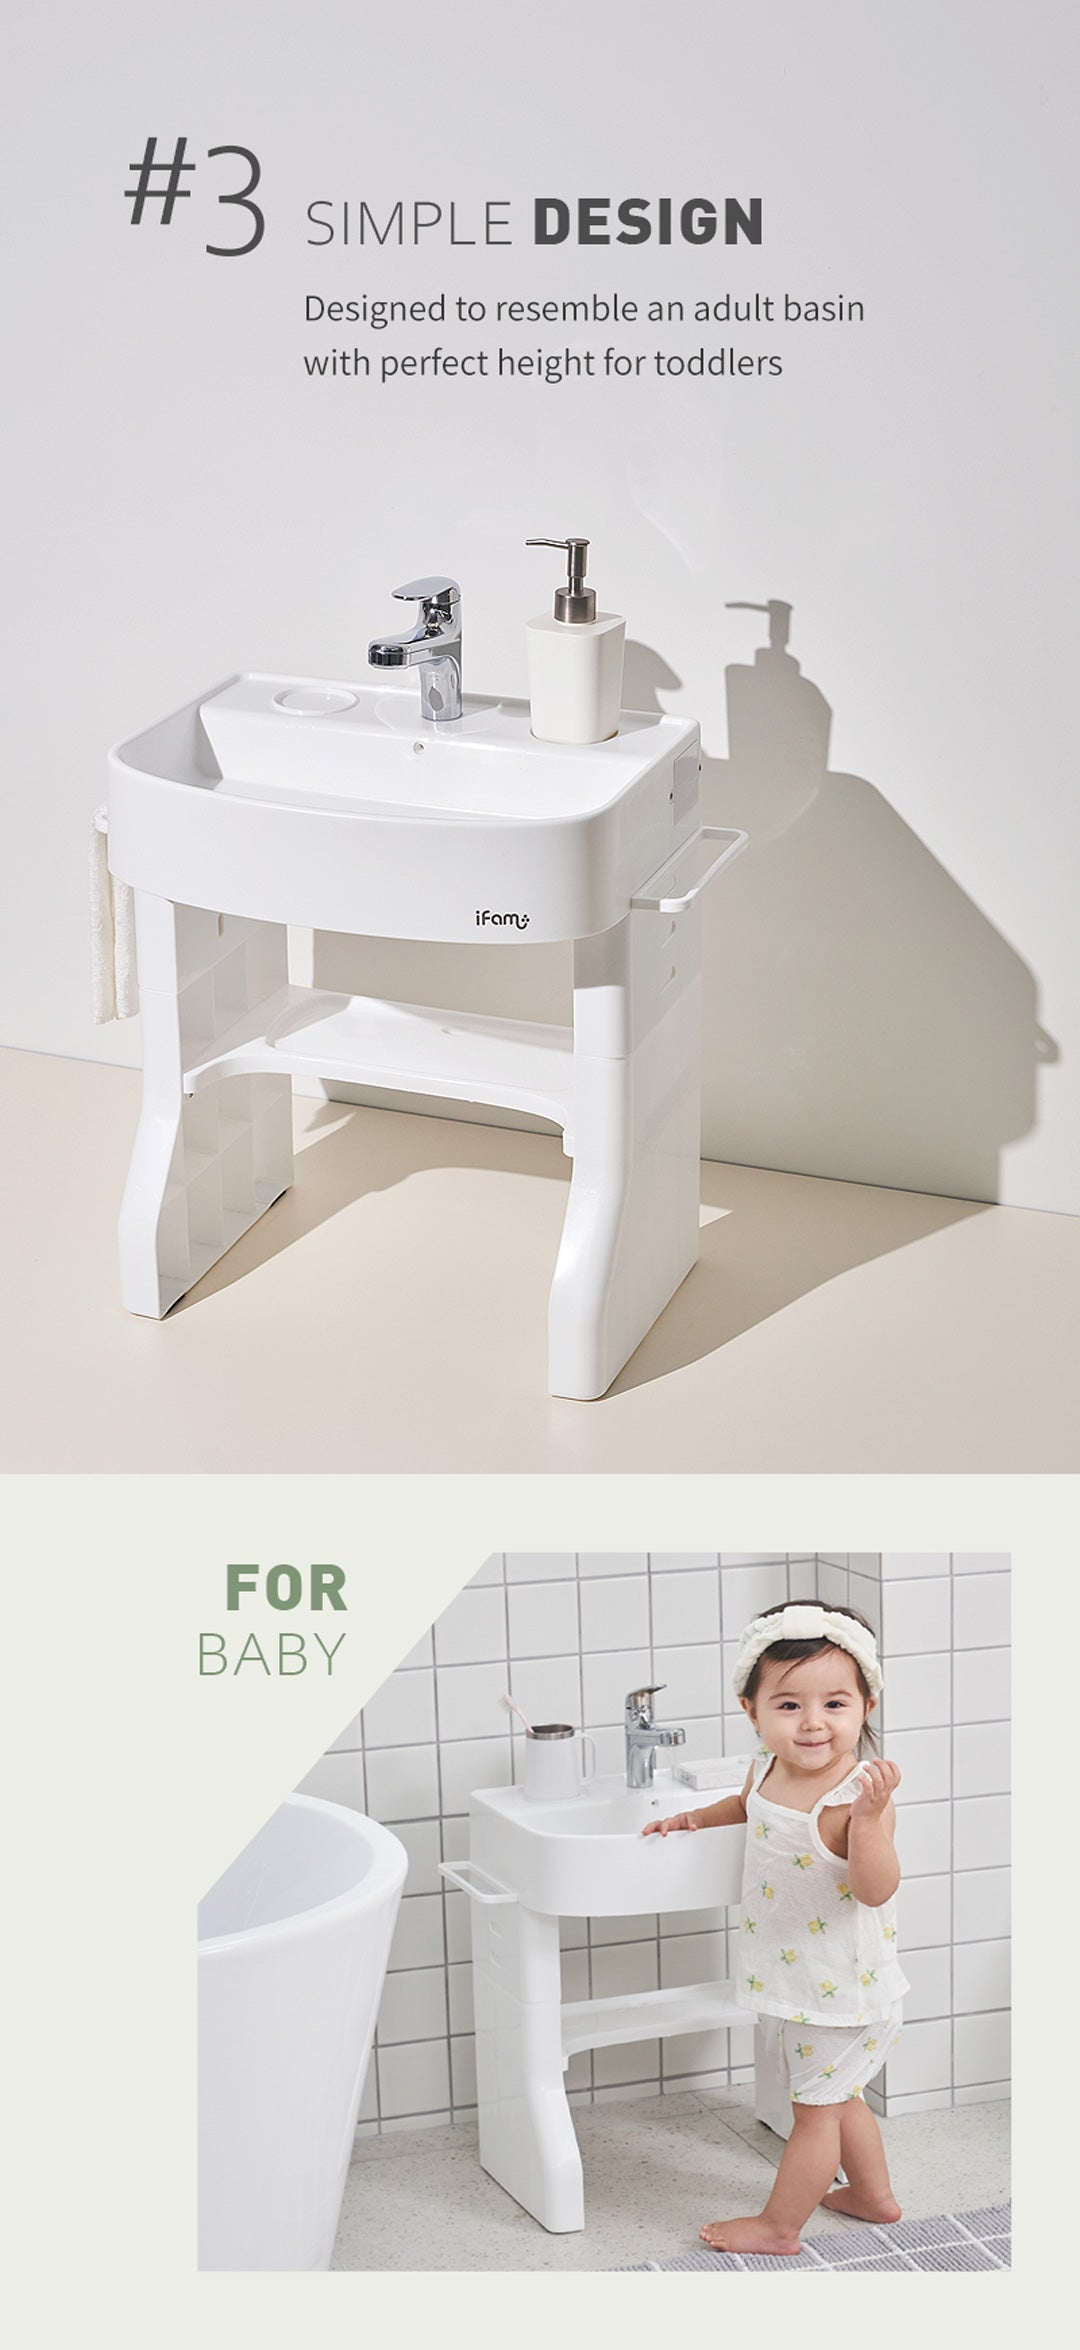 Toddler Washing Table with Simple and Minimalist Design